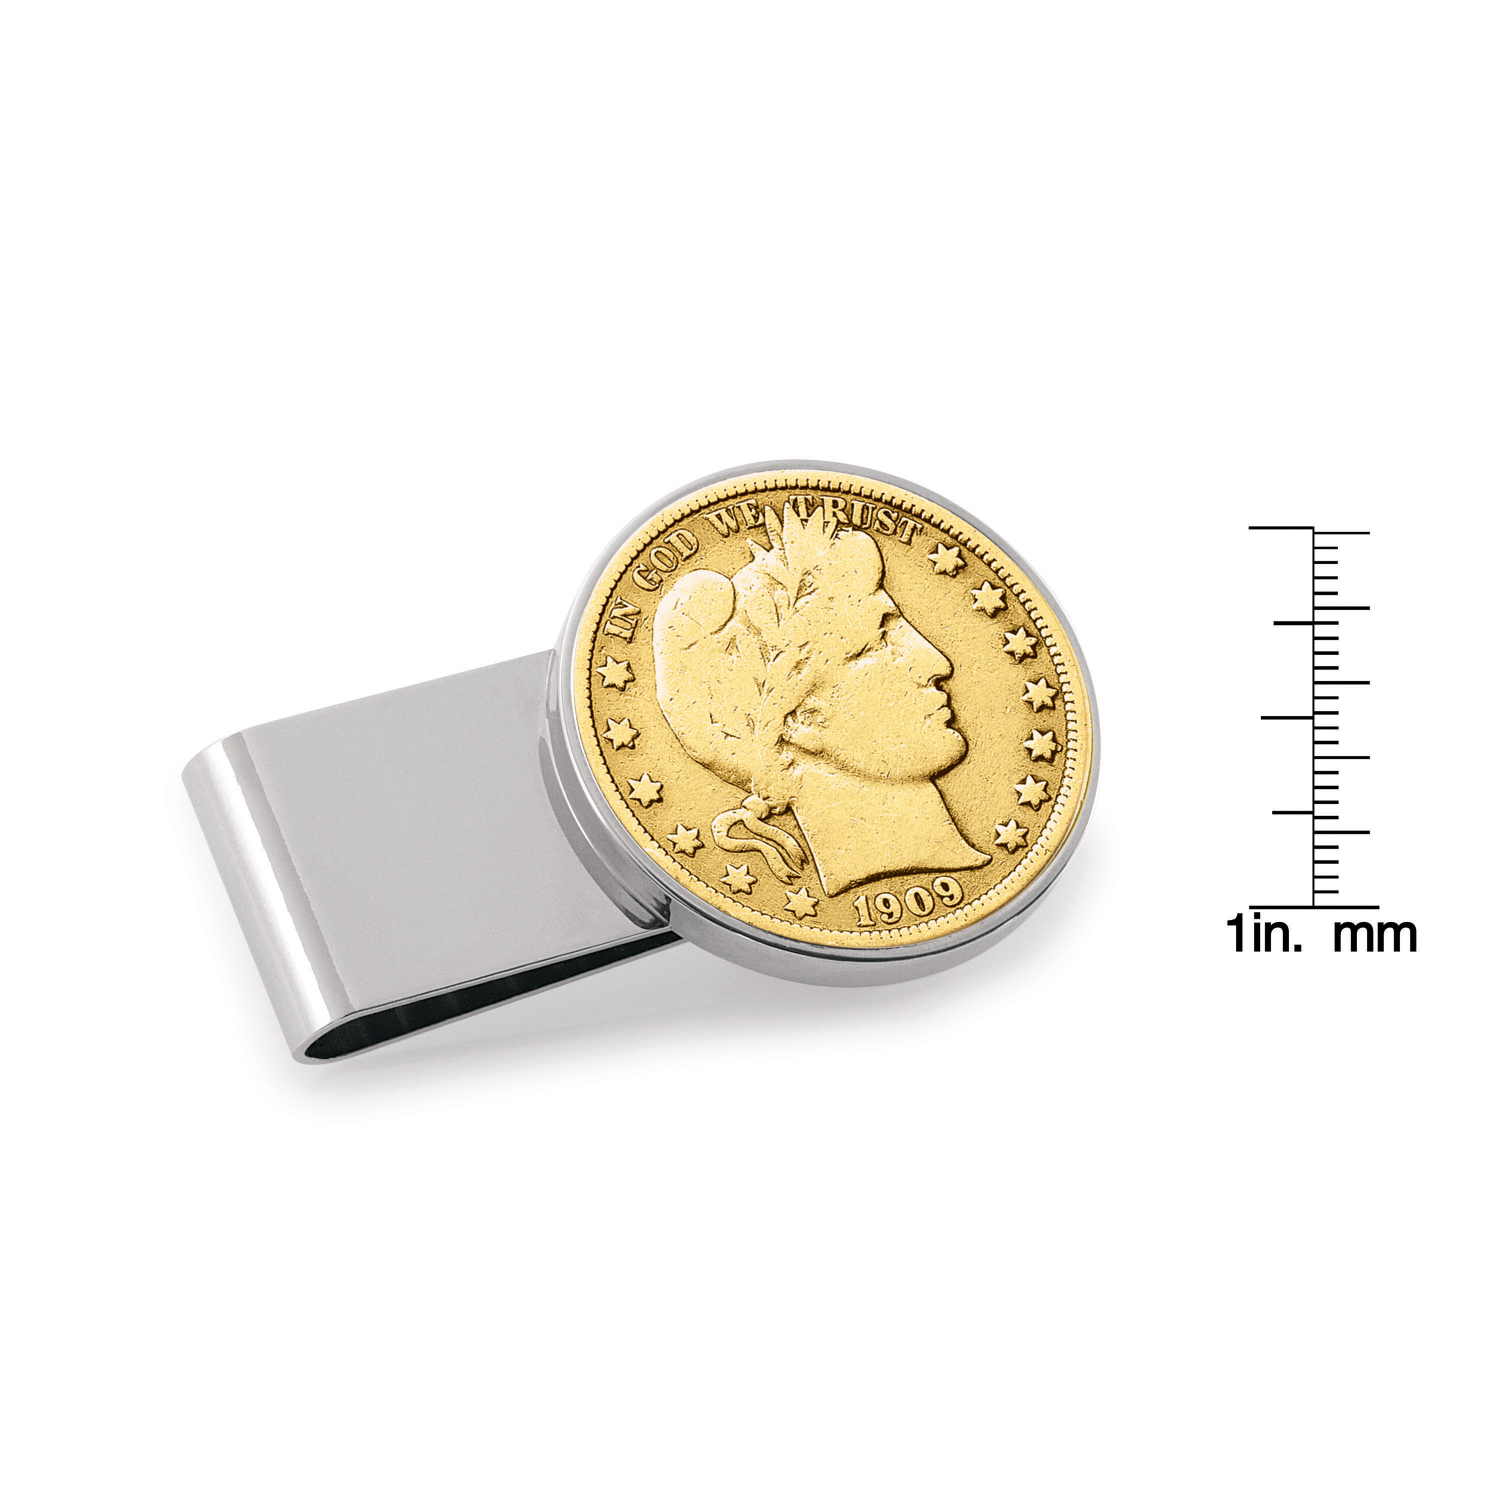 Gold-Layered Silver Barber Half Dollar Stainless Steel Silvertone Coin Money Clip